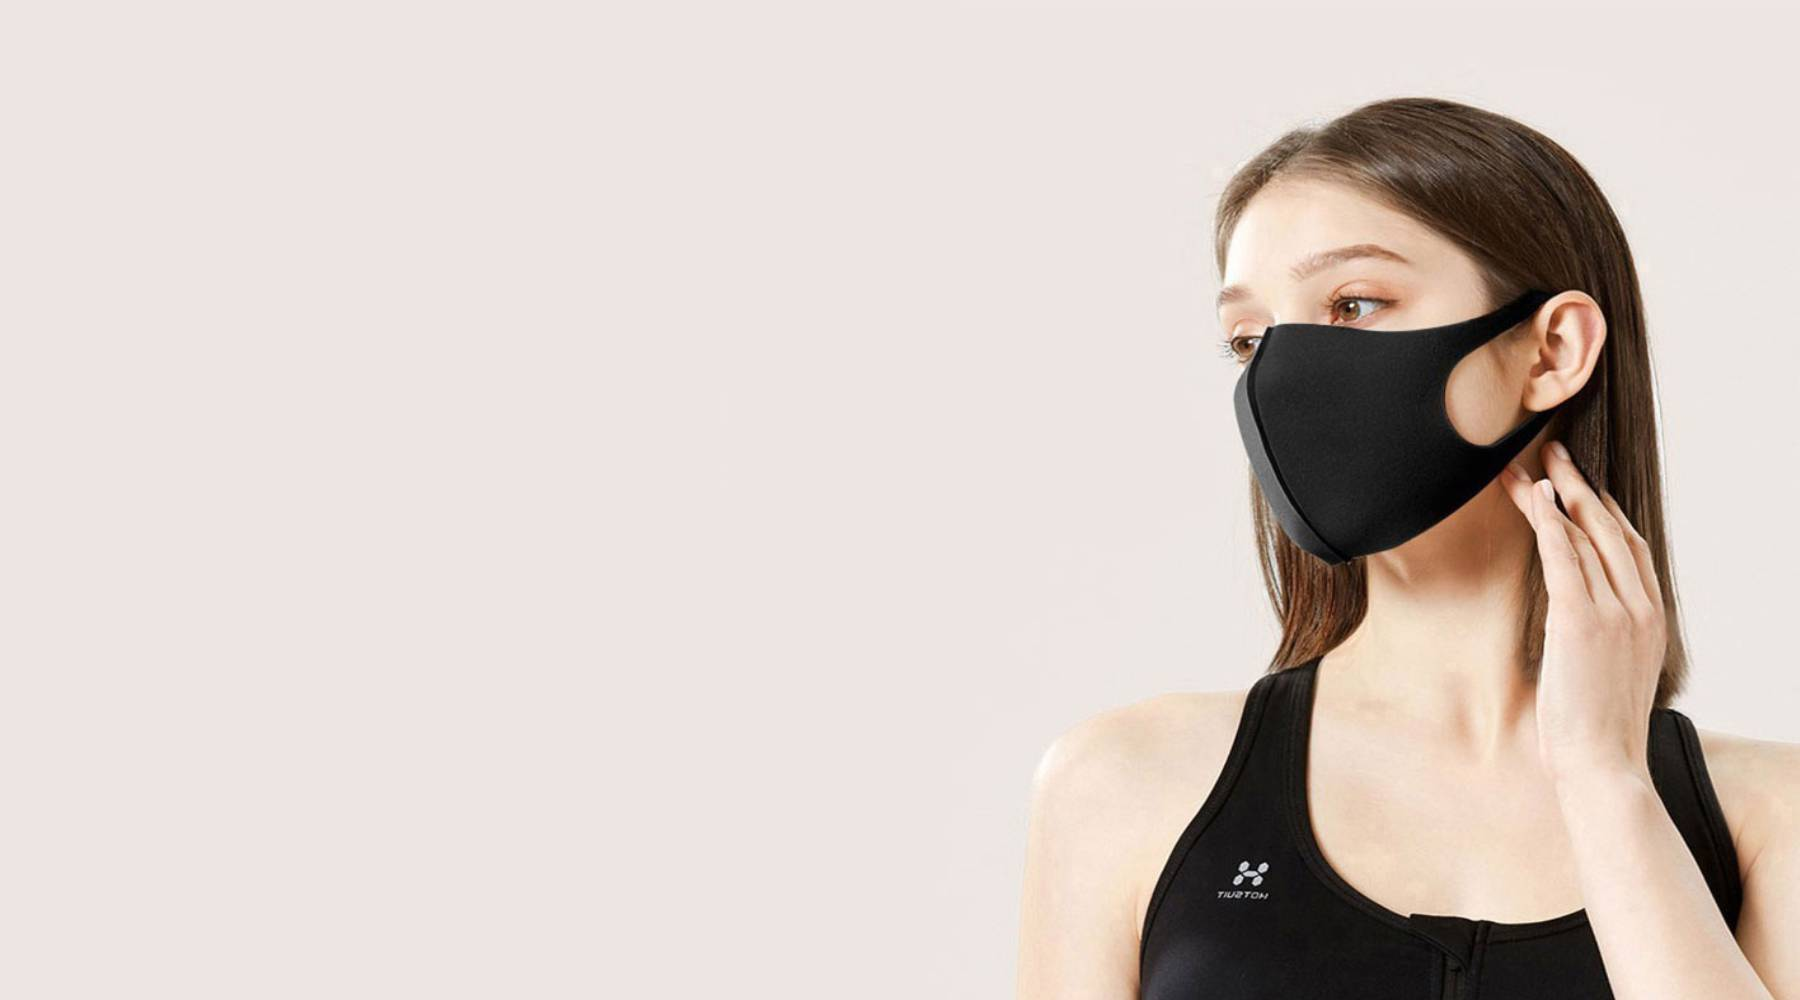 Black Unisex Washable & Reusable Fashion Face Mask Mouth Cover | Zestique